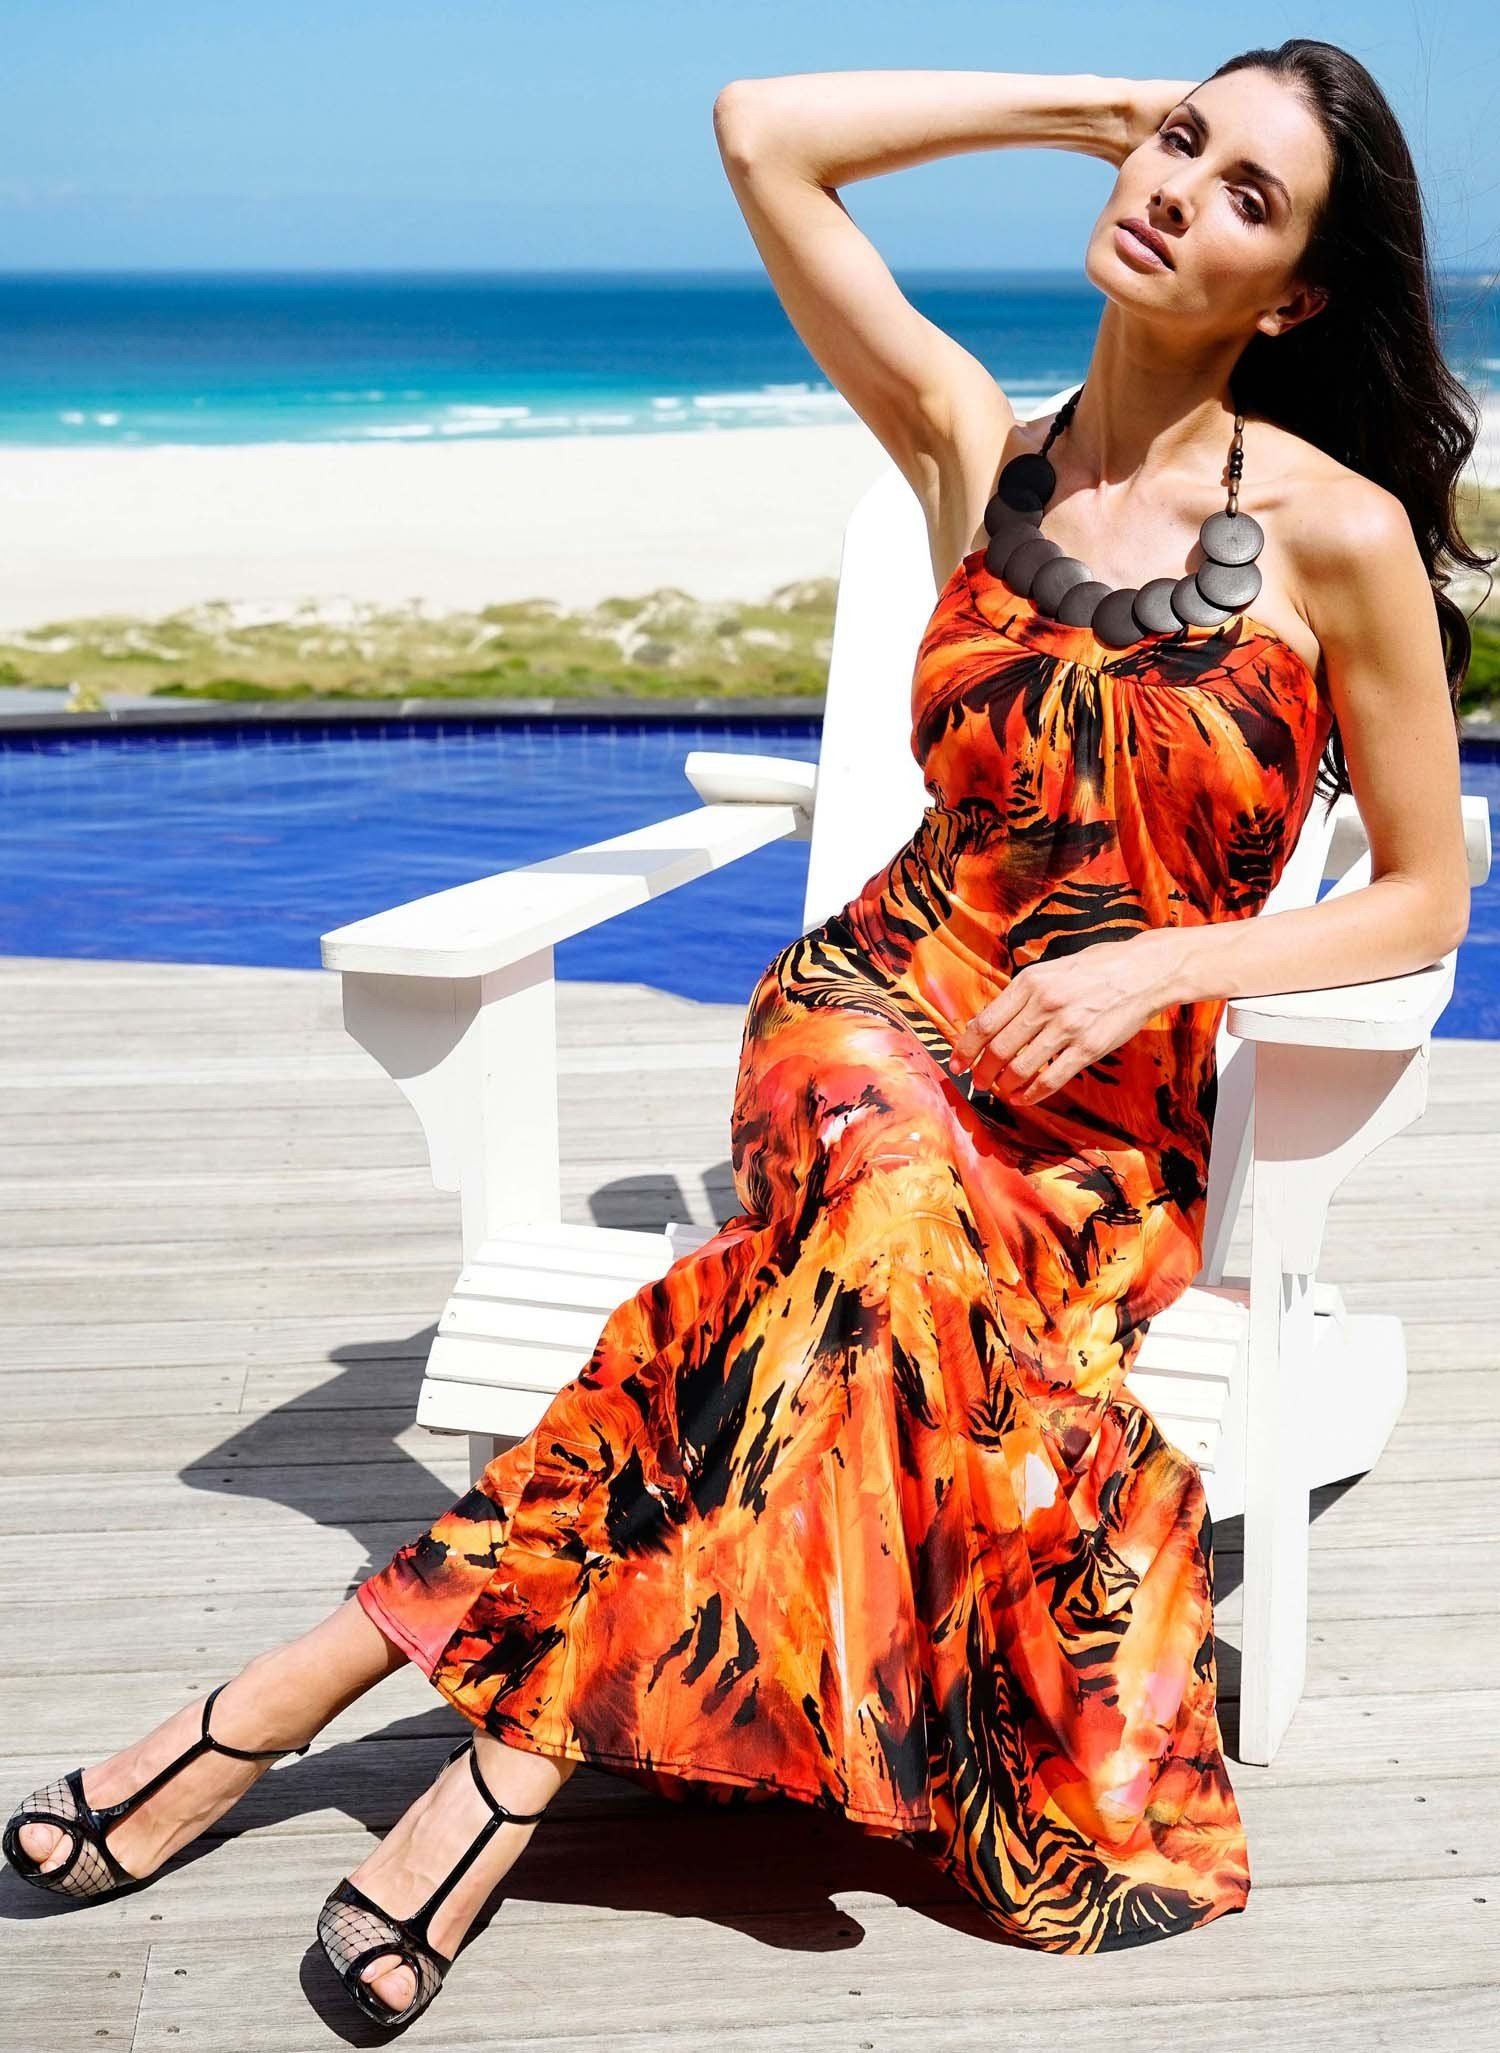 D-Neck.Kleid,Animal rot/orange L 157 - 1 - Ronja.ch